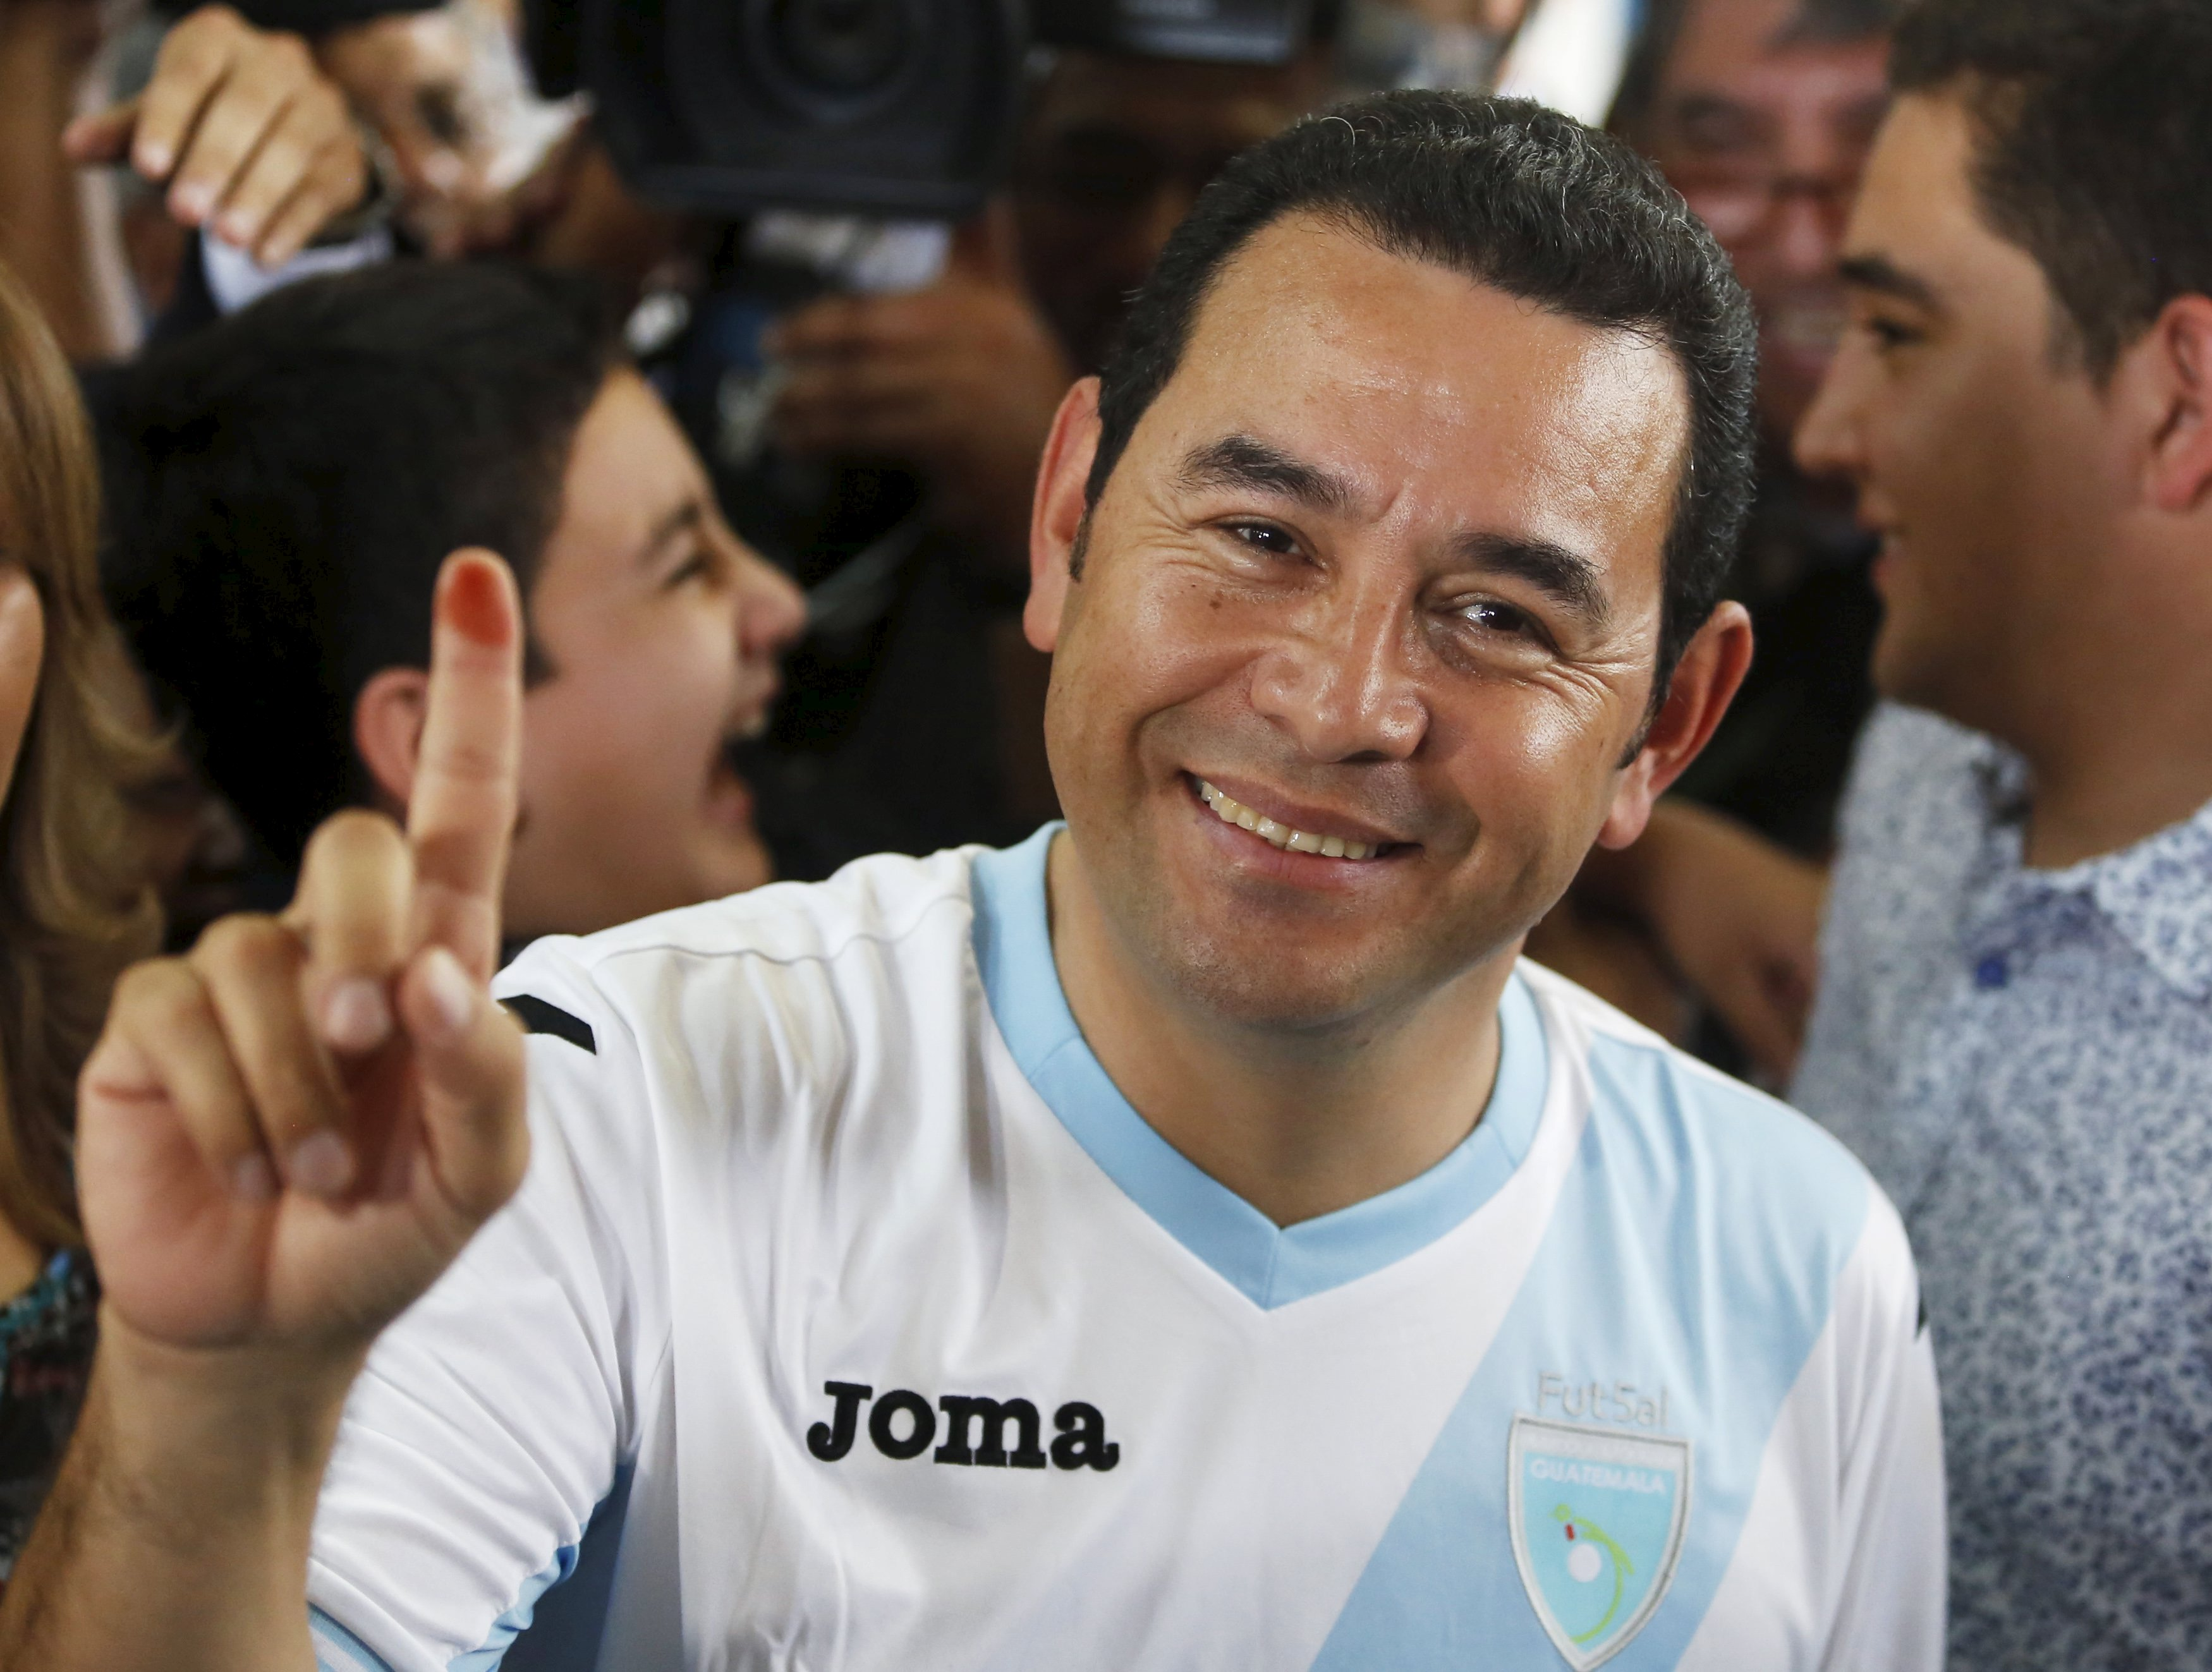 Jimmy Morales, presidential candidate for the National Convergence Front party (FCN) shows his ink-stained finger after casting his vote at a polling station in Guatemala City, October 25, 2015. Photo: Reuters